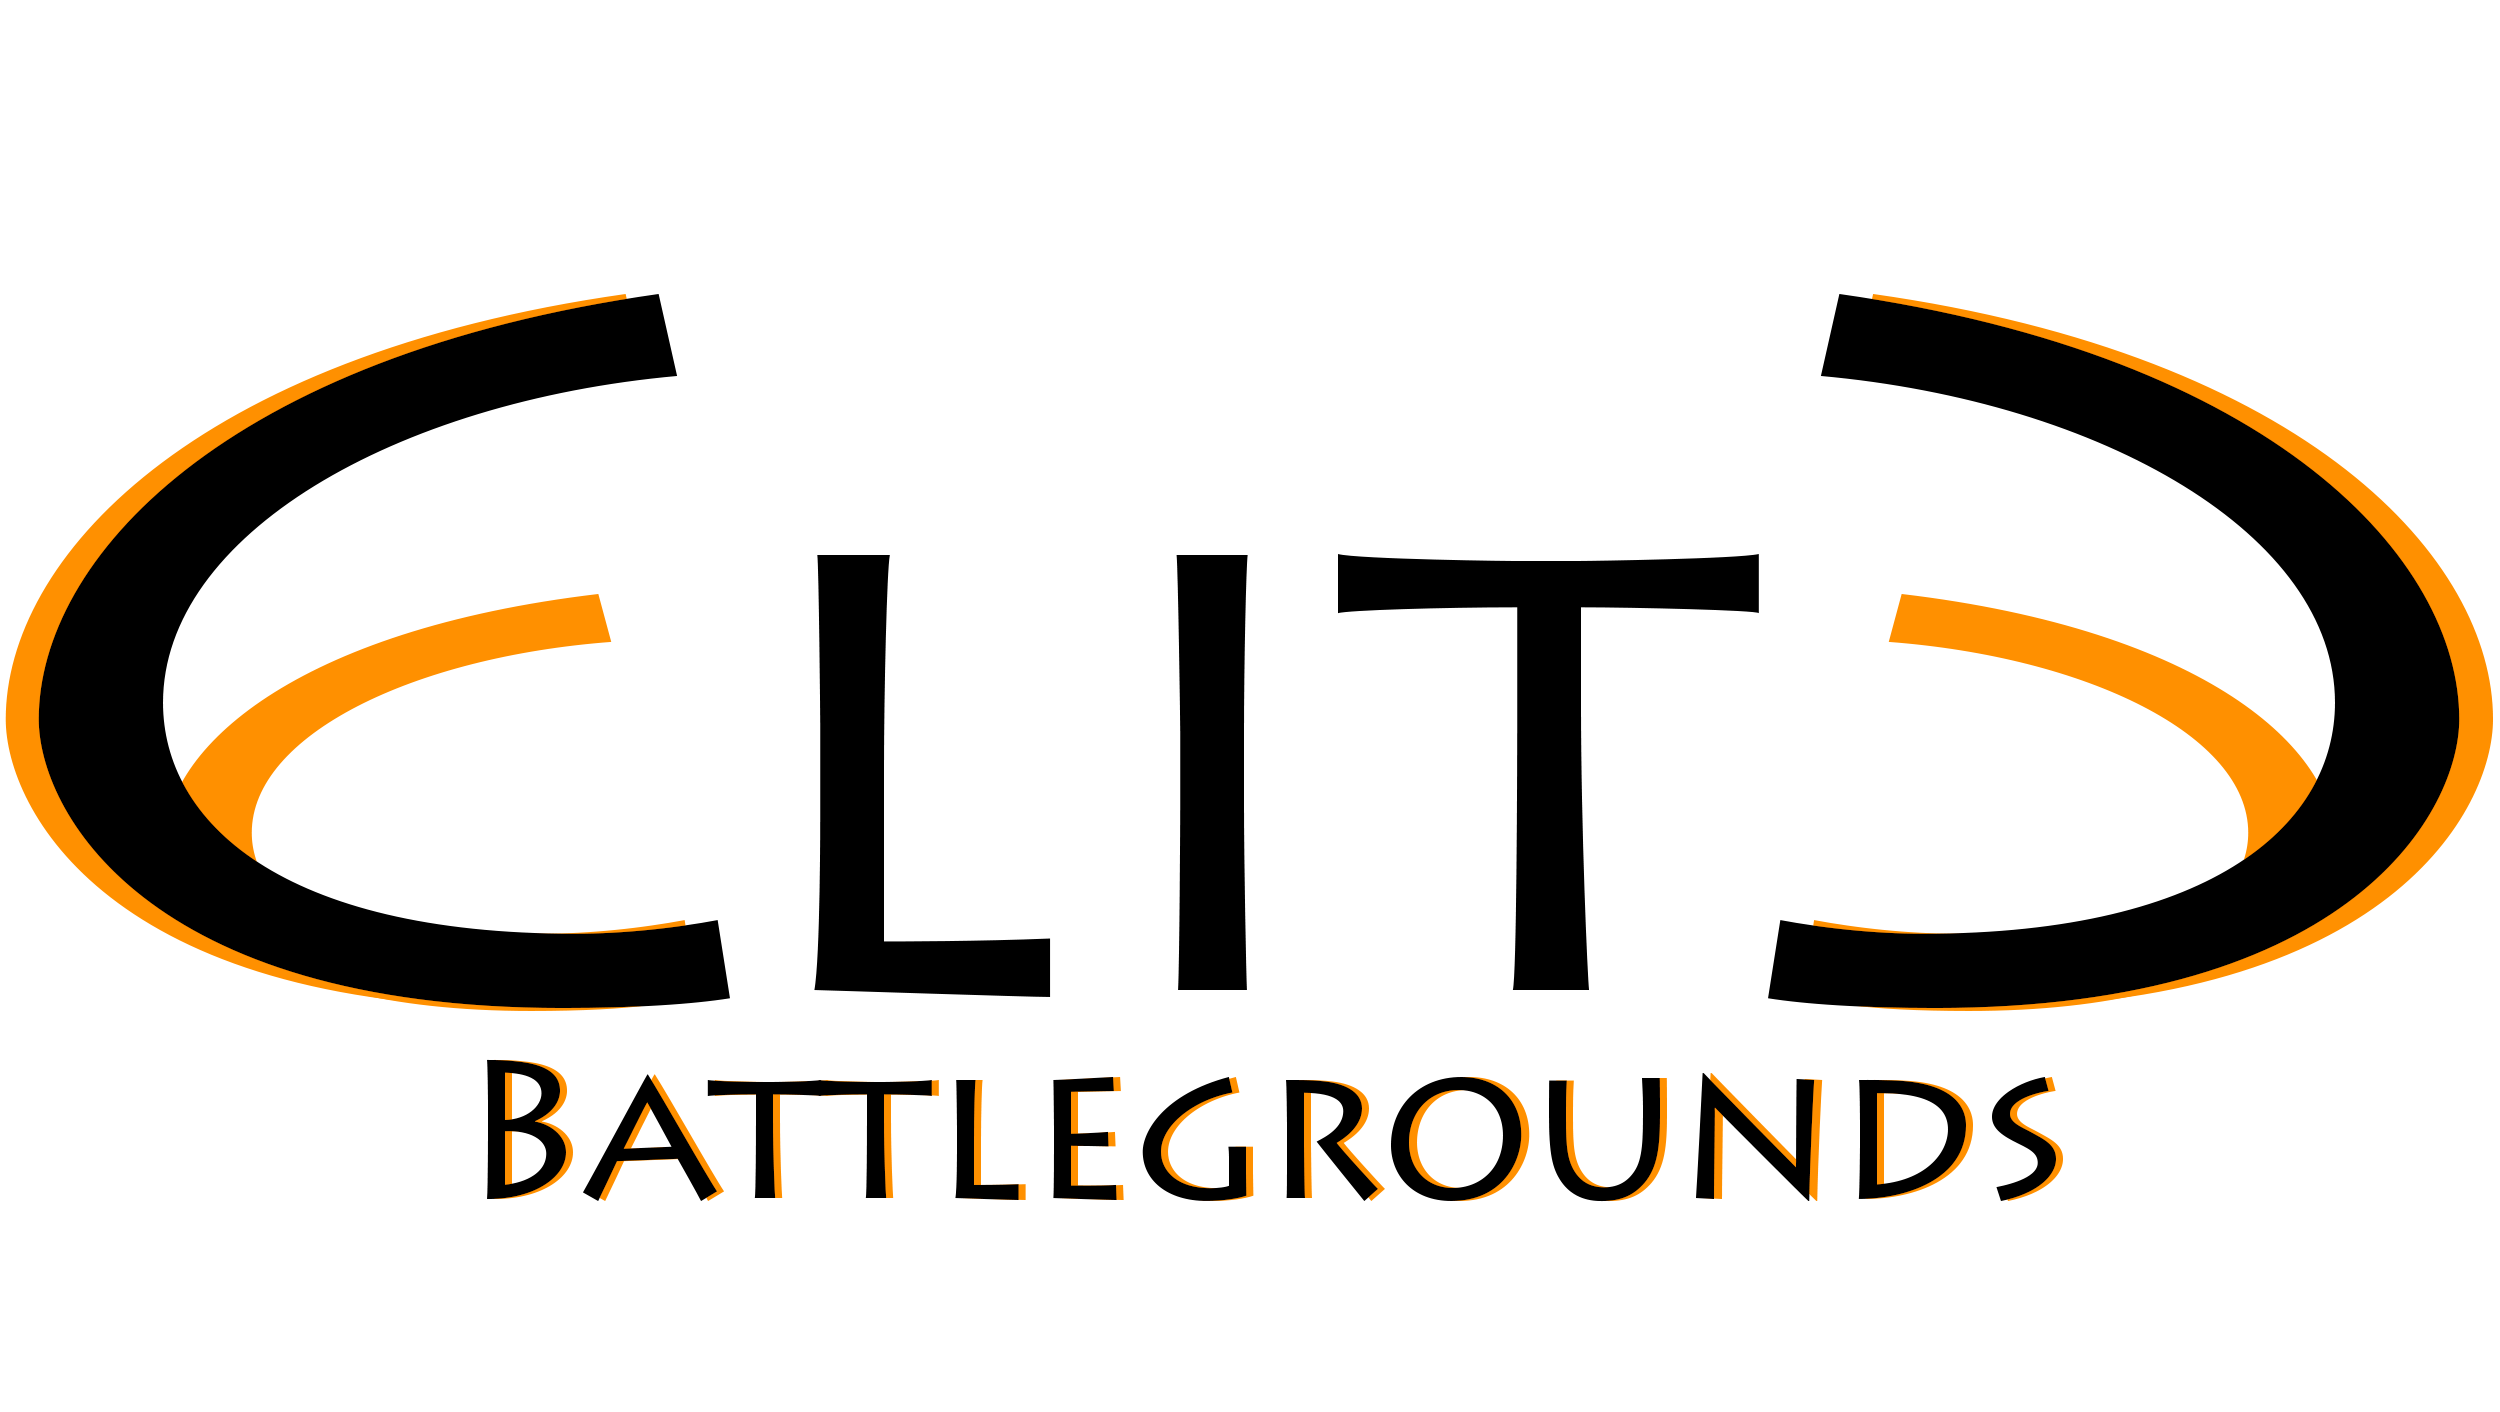 Logo Design by Private User - Entry No. 52 in the Logo Design Contest Creative Logo Design for Elite Battlegrounds.